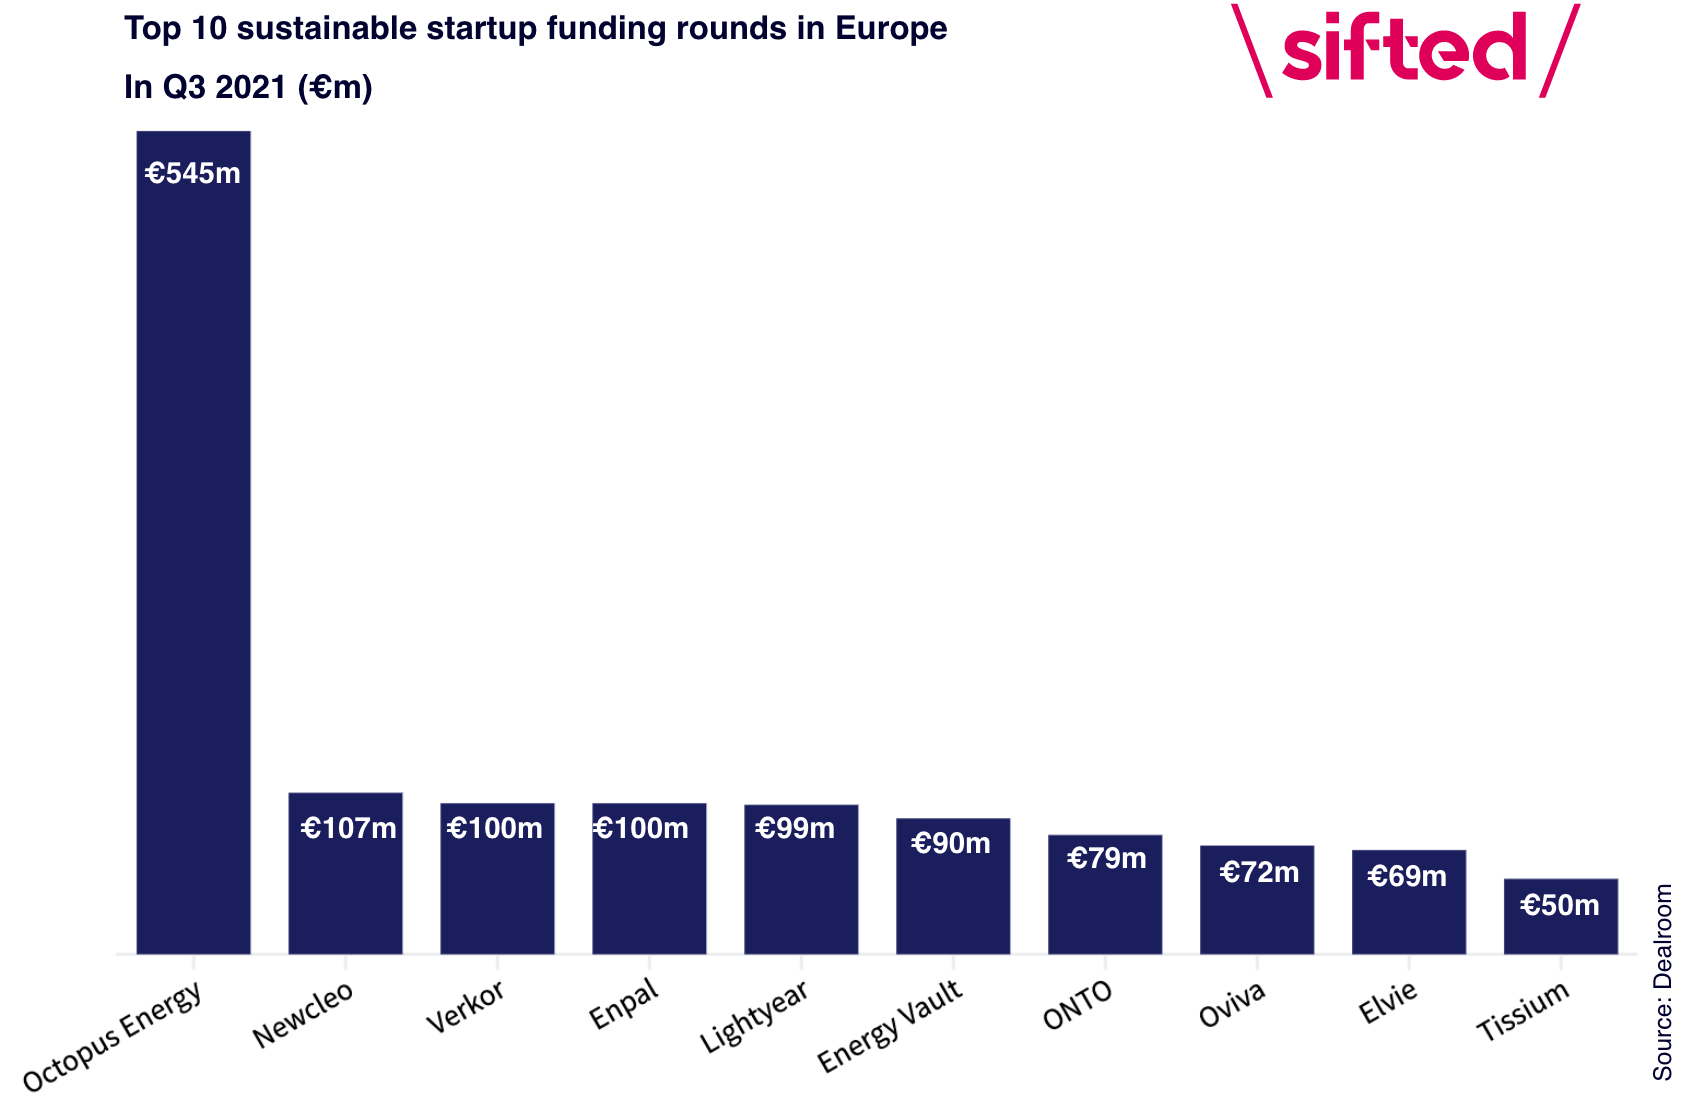 Top 10 sustainable startups with most investment in Q3 2021